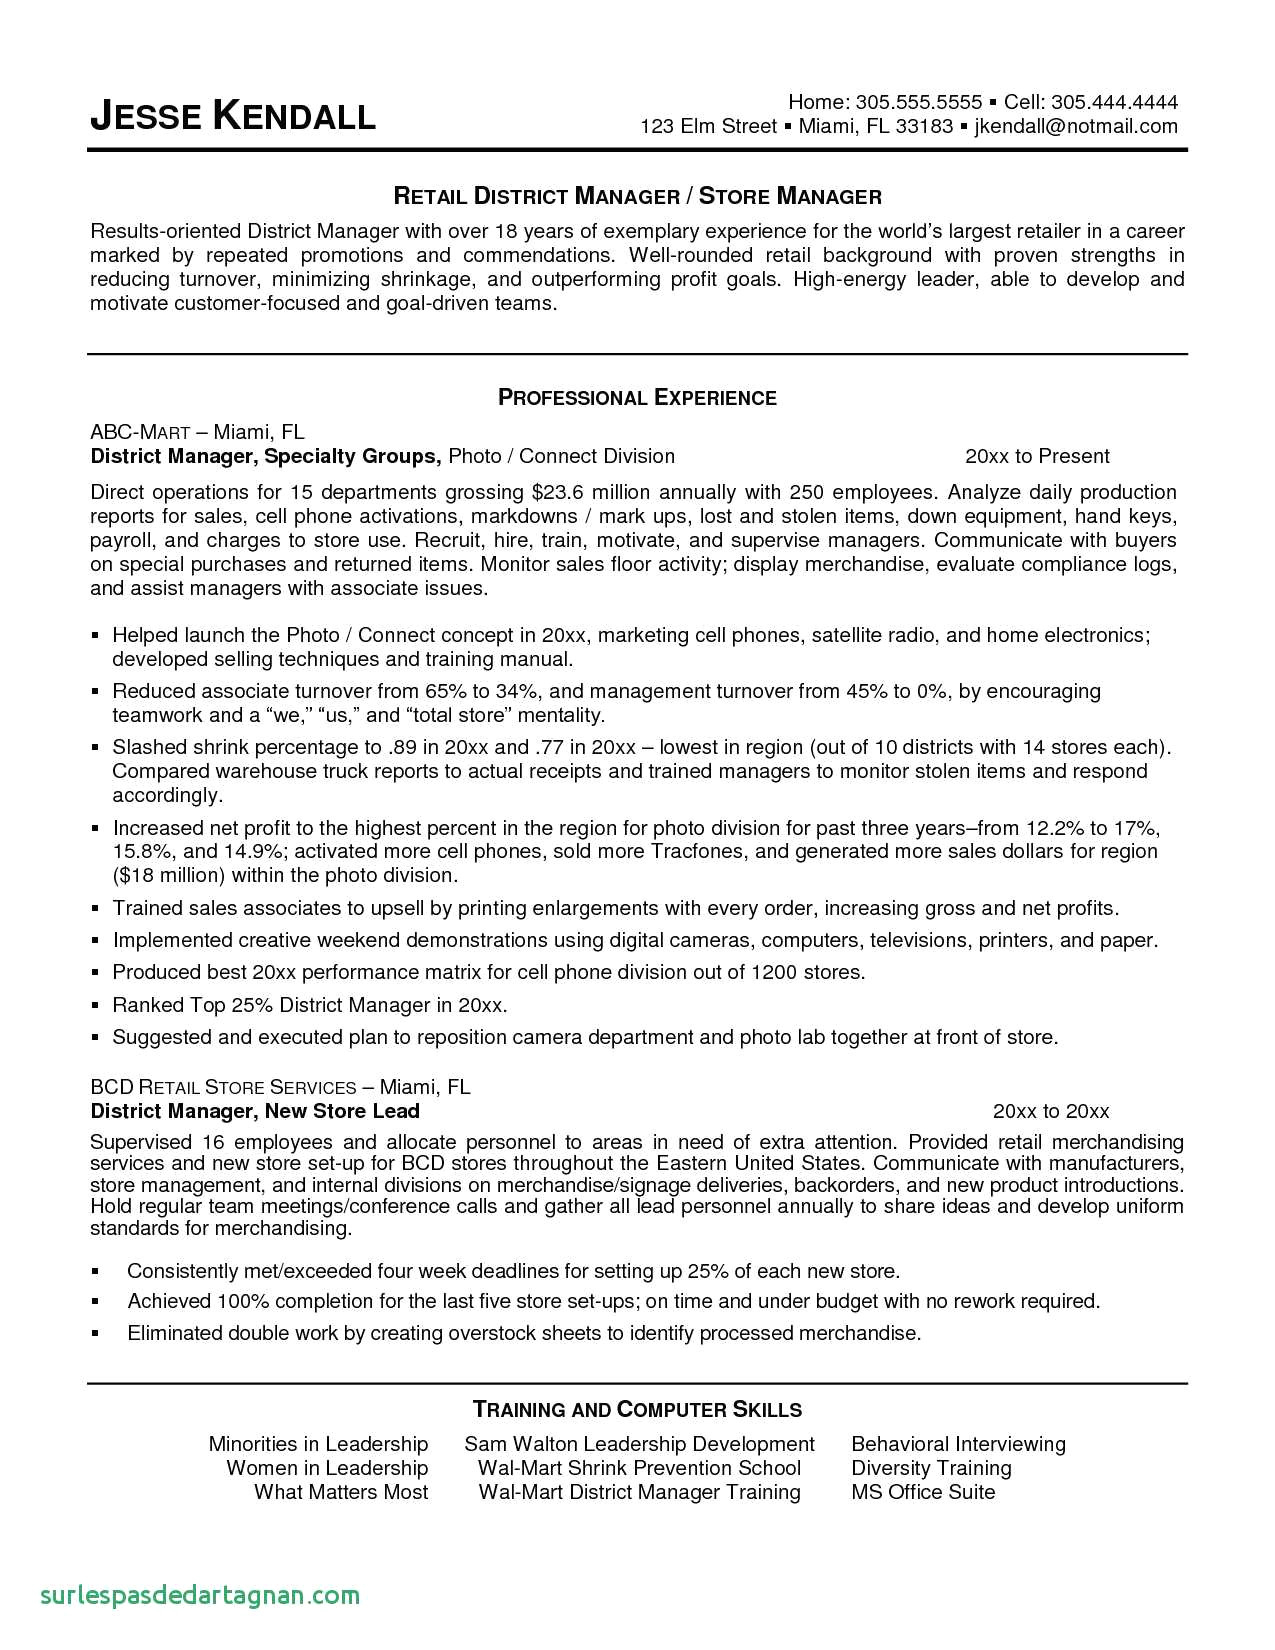 Personal Summary Resume - format Of A Personal Statement